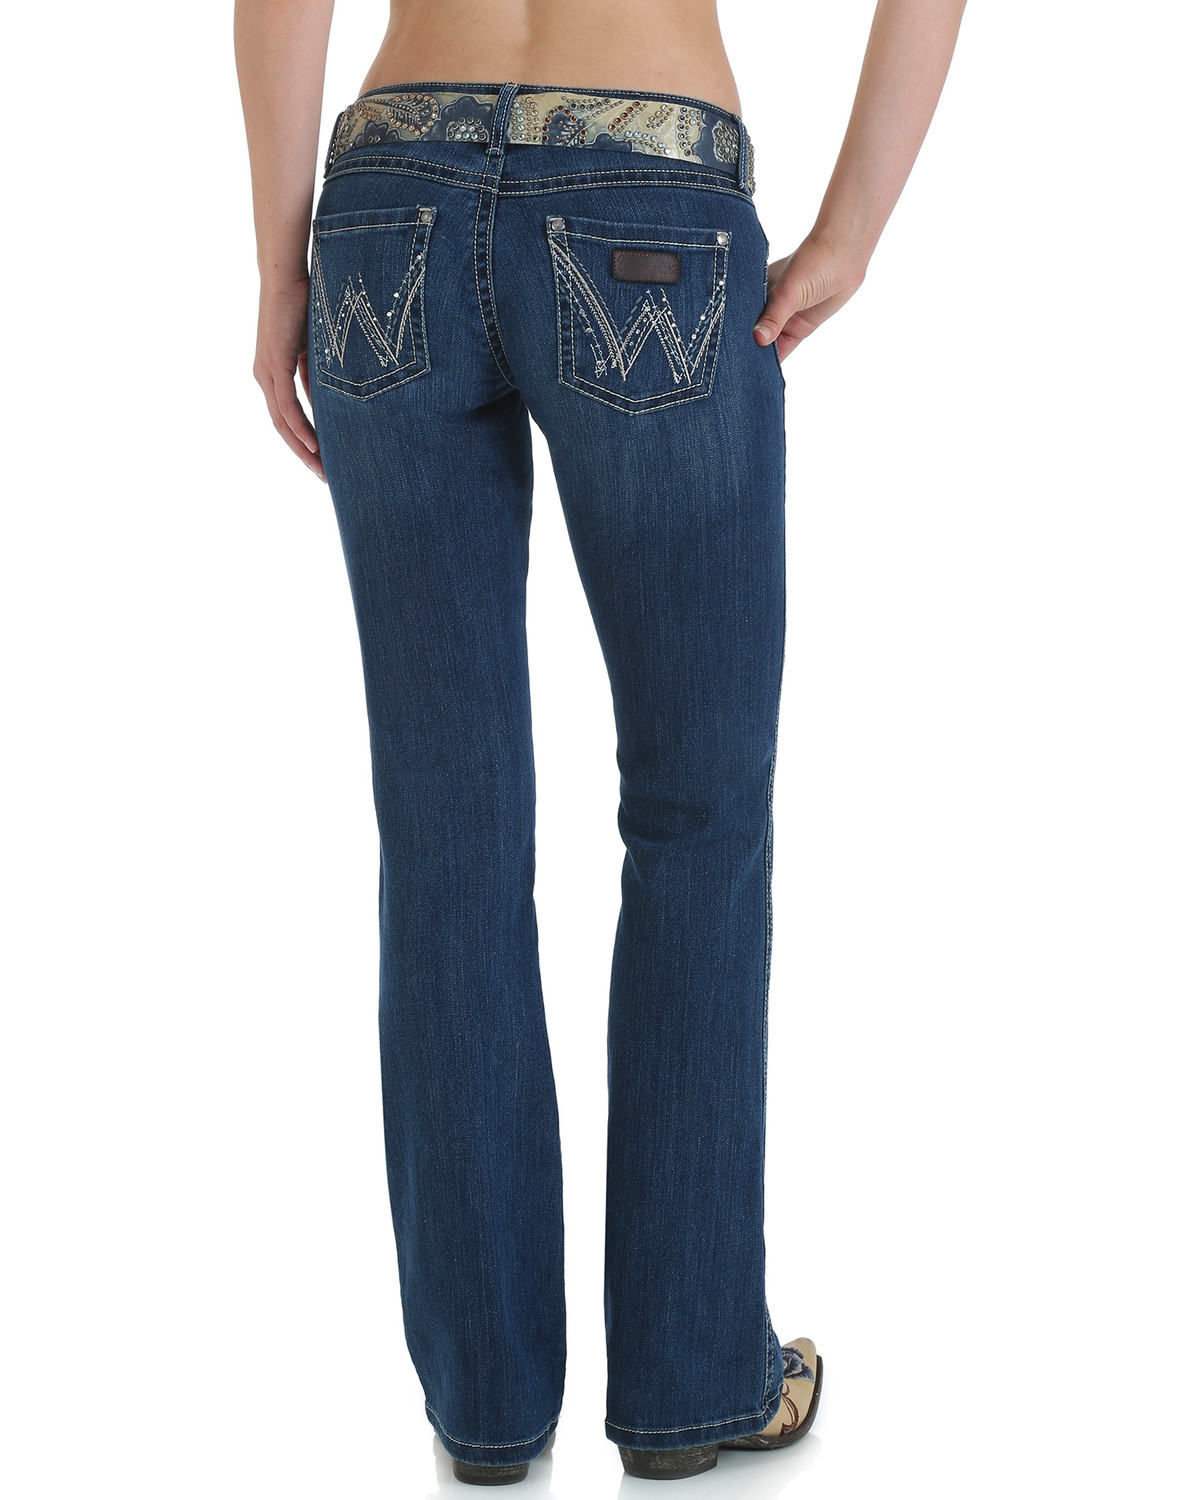 14782d86 Zoomed Image Wrangler Women's Premium Patch Sadie Boot Cut Jeans, Indigo,  hi-res. Zoomed Image ...